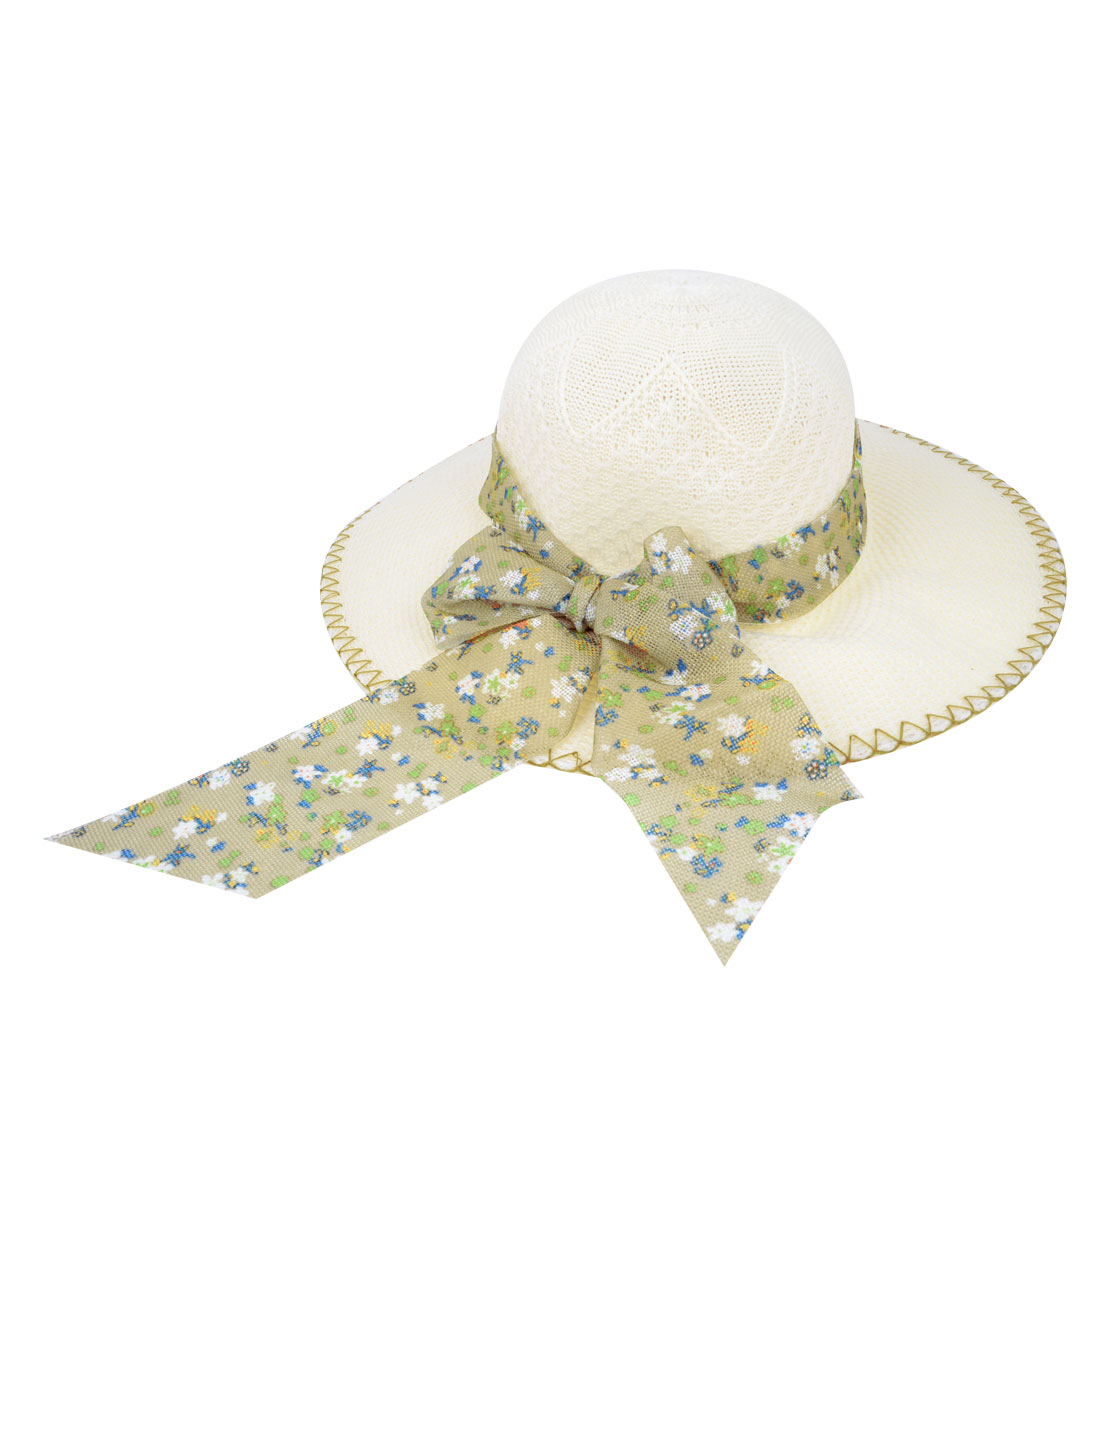 "4"" Wide Brim Bowknot Ornament Summer Beach Sun Hat Cap Ivory for Women"